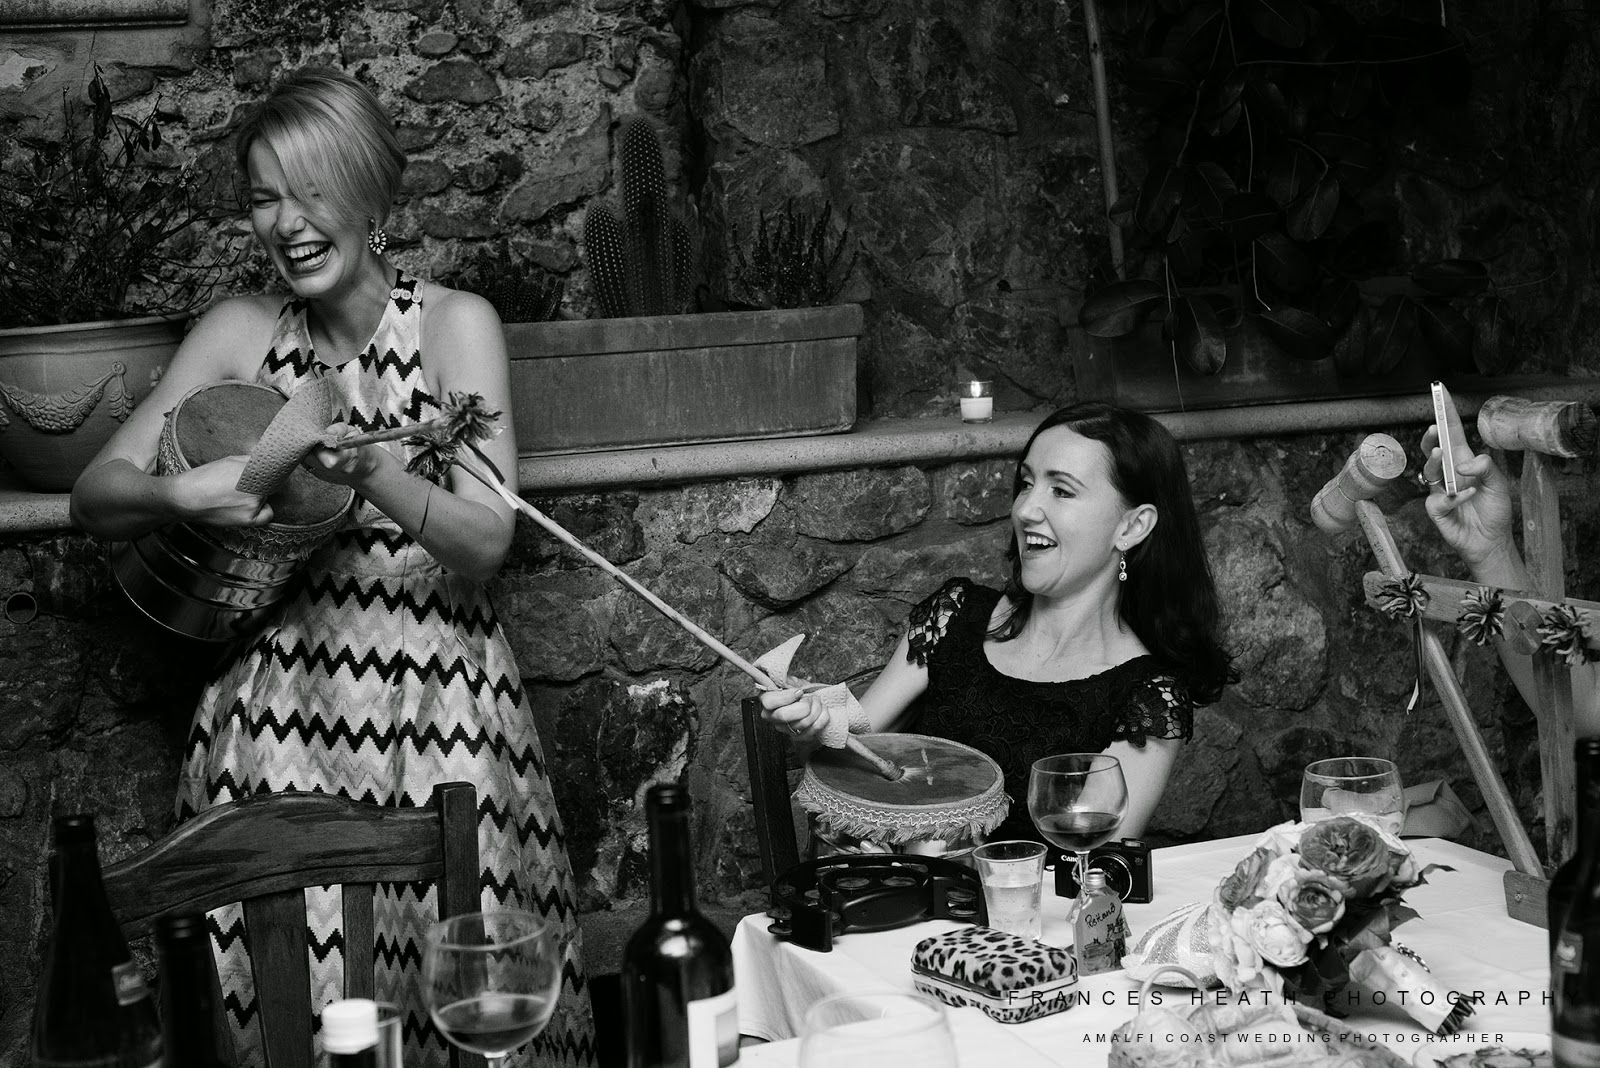 Guests playing traditional Italian instruments in Positano